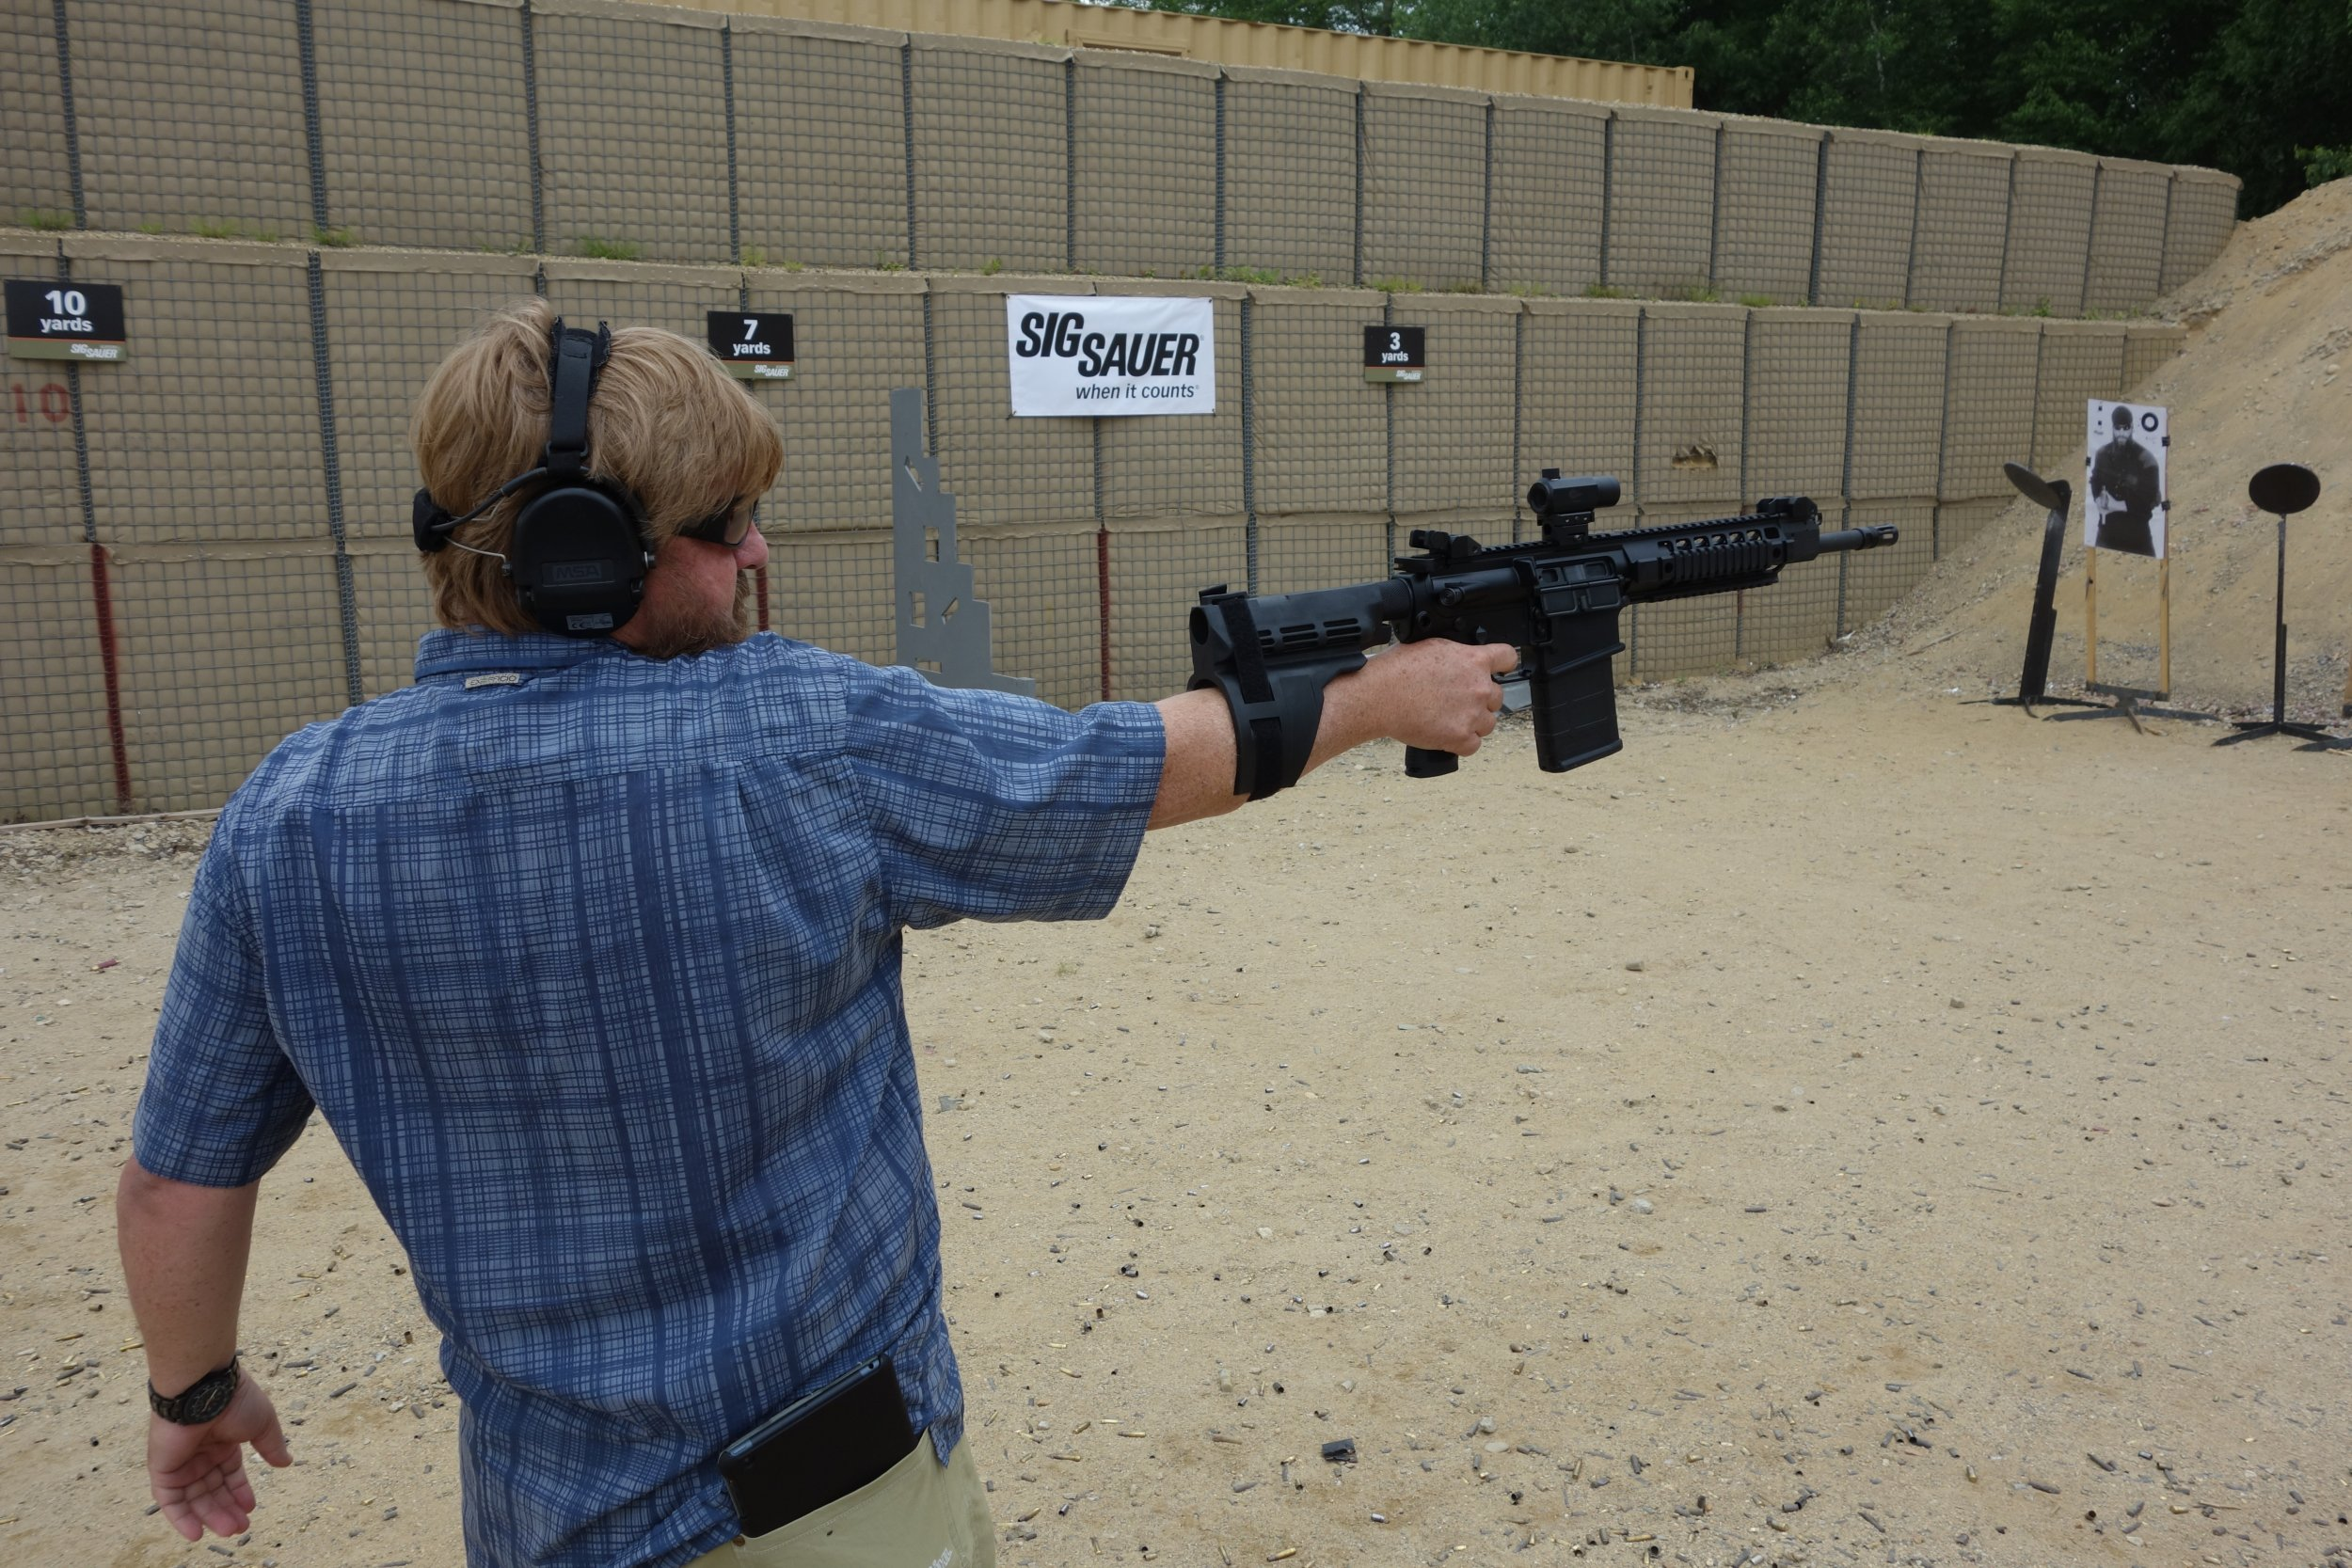 SIG SAUER SIGTac SB15 Pistol Stabilizing Brace on SIG716 7.62mm Tactical Piston AR Carbine SBR Eric Graves Soldier Systems Firing at SIG SAUER Academy Range New Media Writers Event 2014 David Crane DefenseReview.com DR 1 SIG SAUER SIGTac SB15 Pistol Stabilizing Brace for One Handed Firing of Tactical AR 15 Pistols